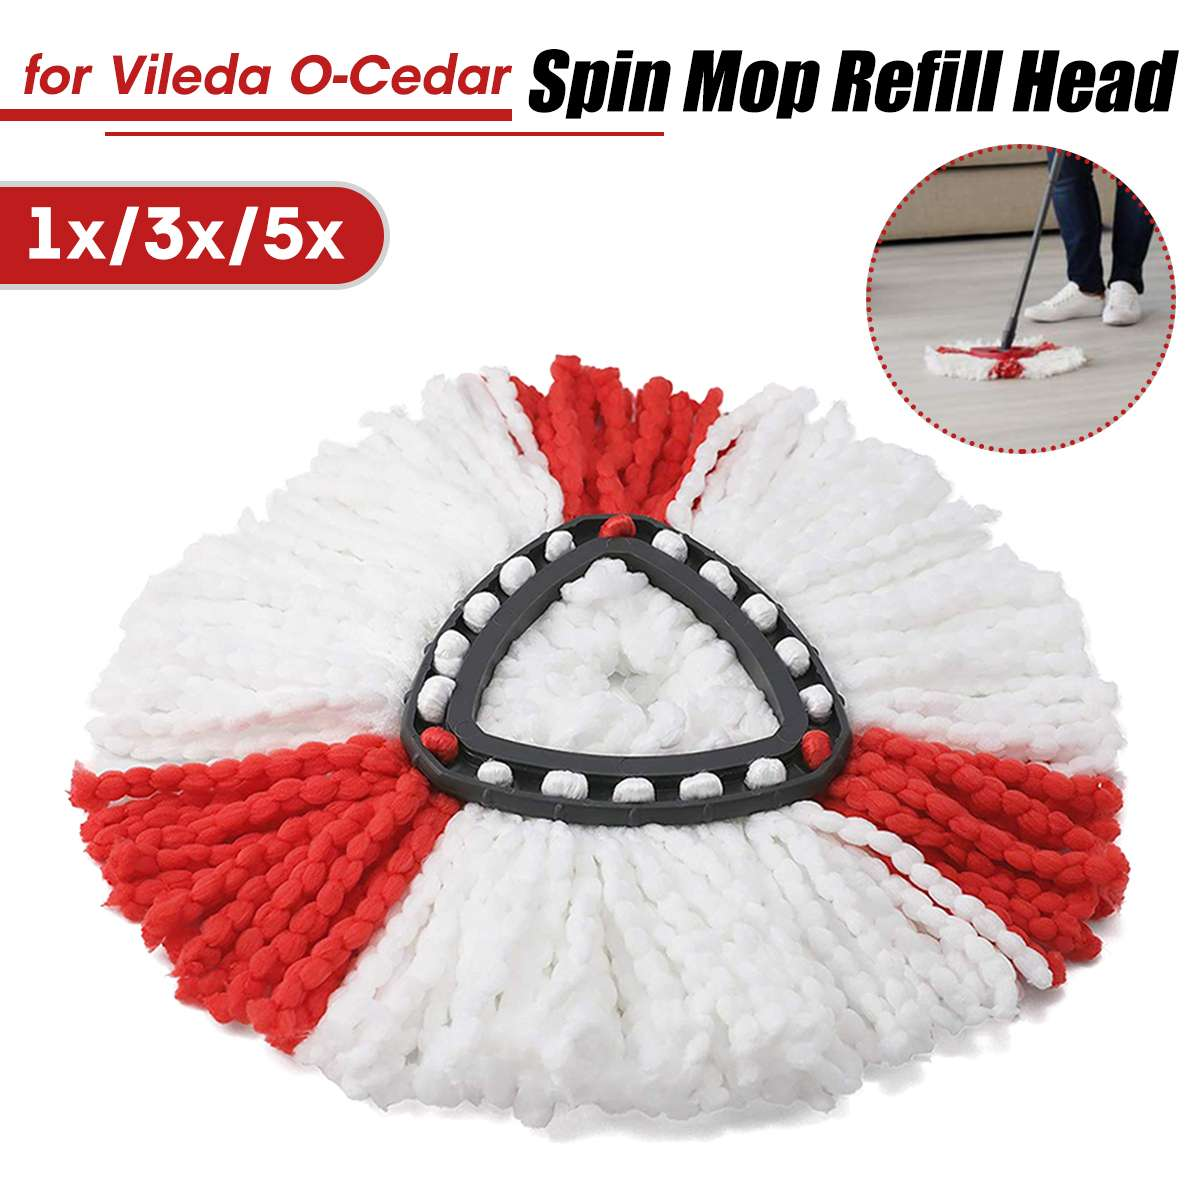 1/3/5pcs Microfibre Spin Mop Replacement Head for Vileda O-Cedar as Household Cleaning Tools 1